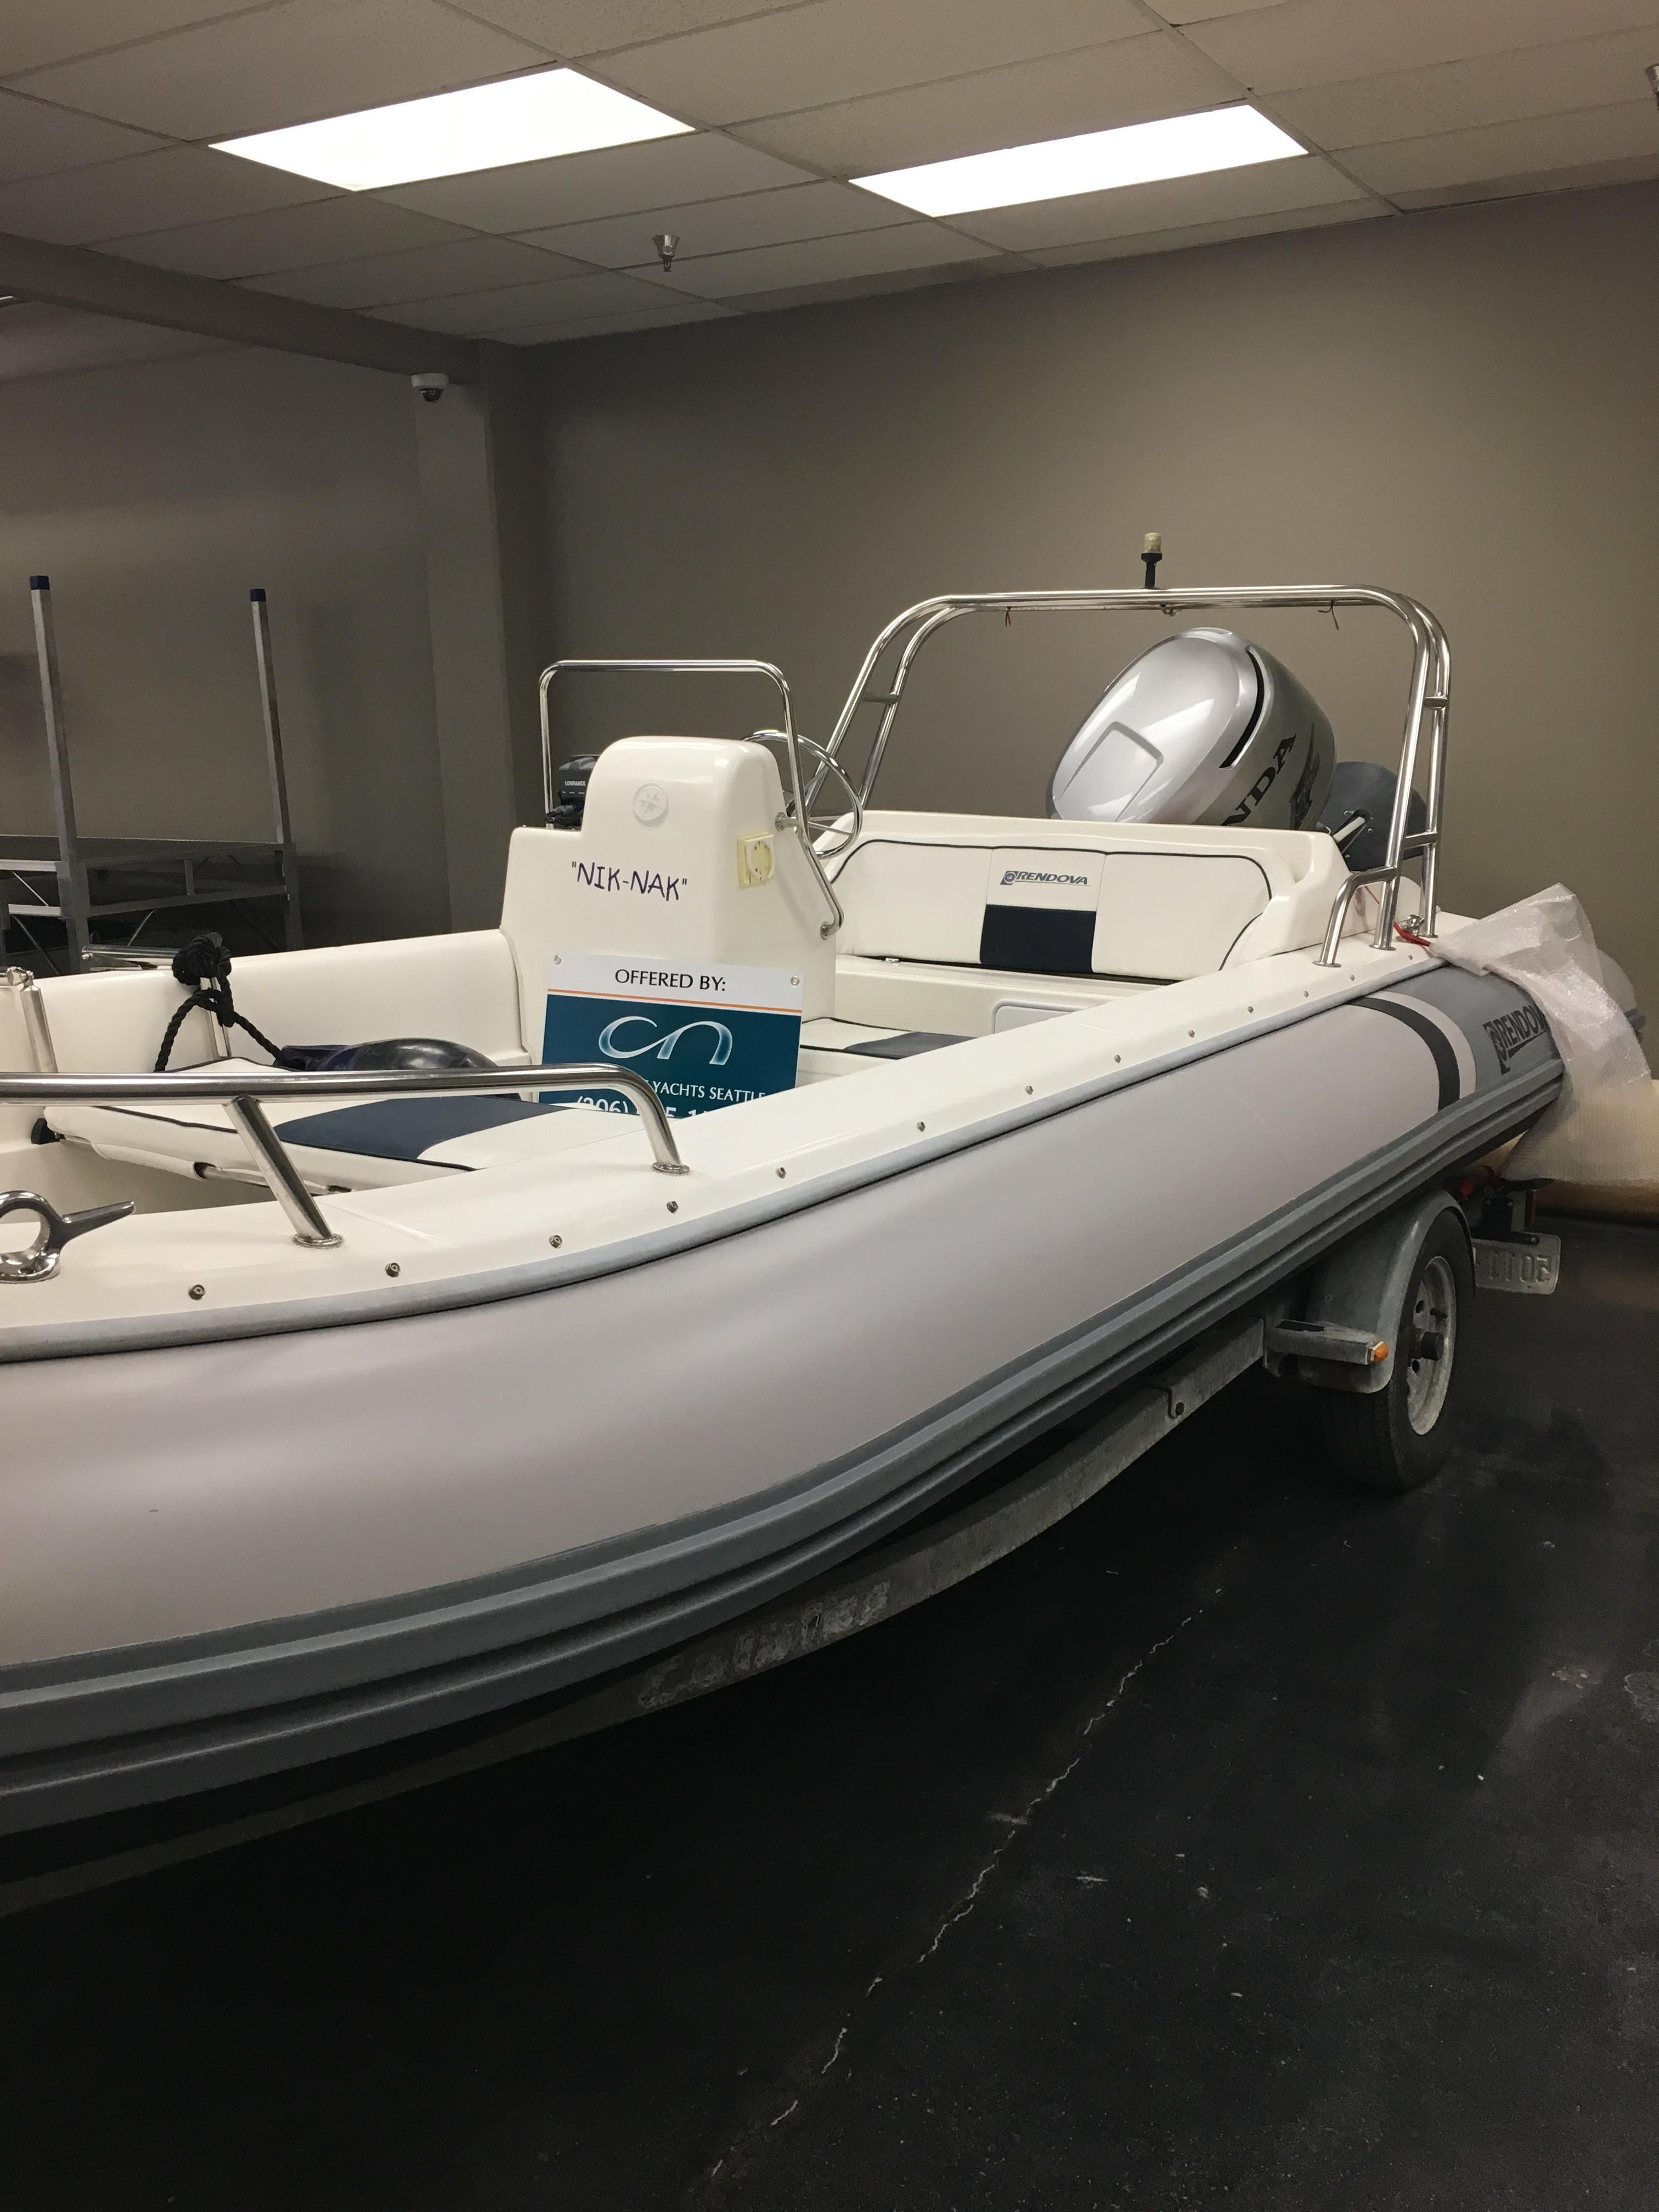 Power Boats For Sale >> 2003 Rendova Tender for sale - YachtWorld